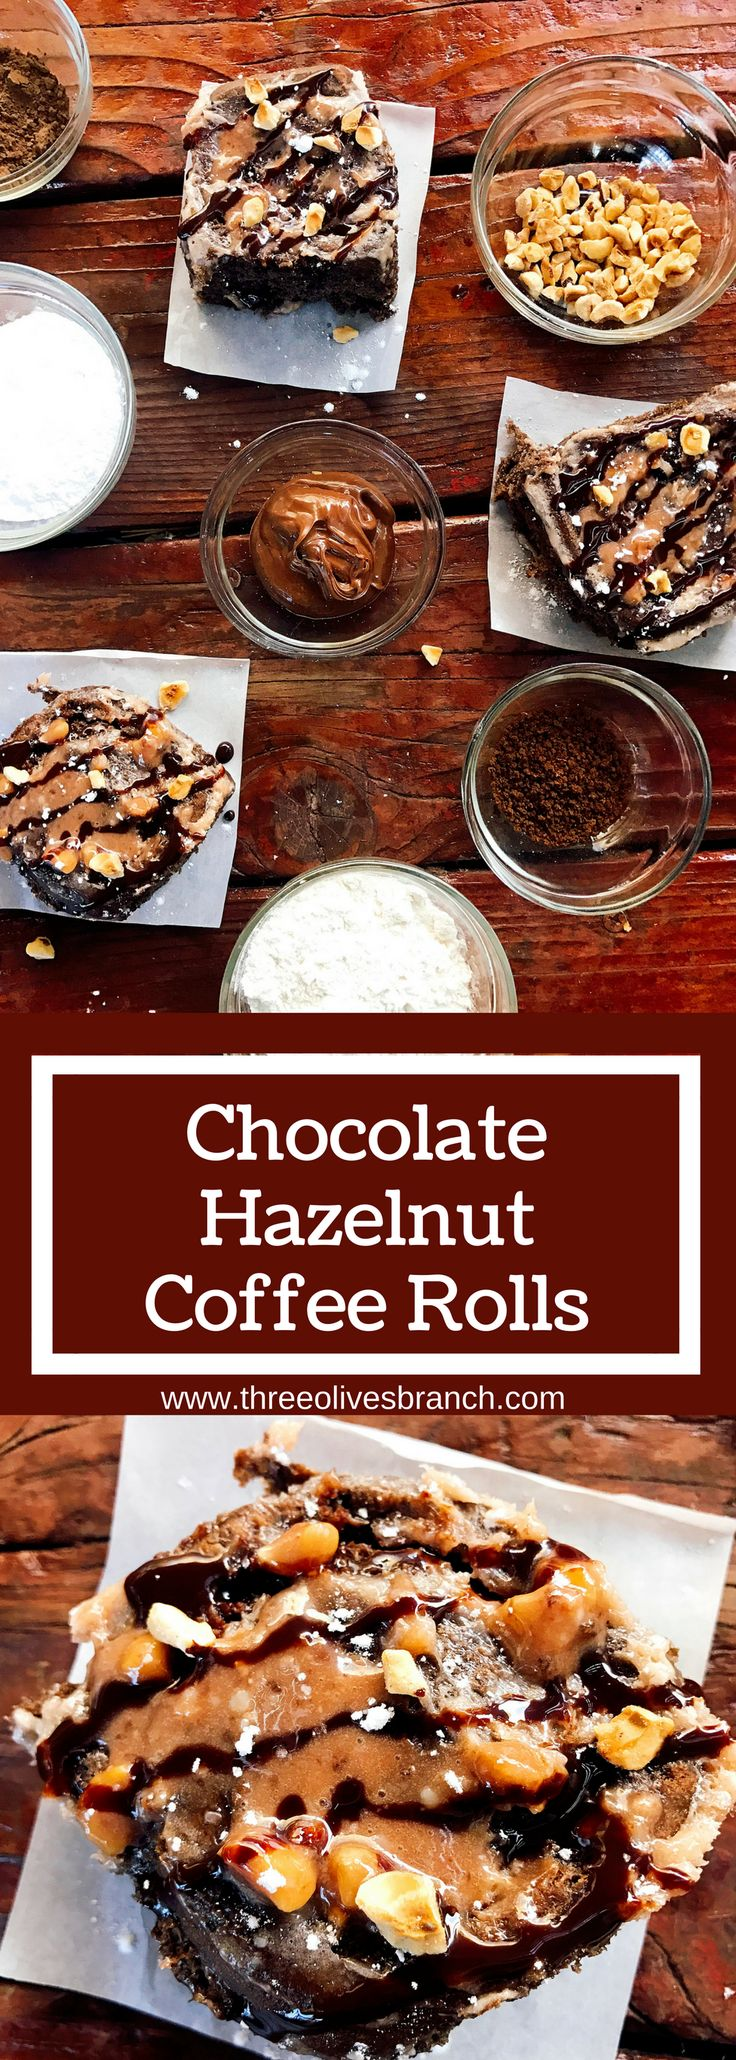 Chocolate hazelnut rolls are a decadent and sweet treat perfect for breakfast, brunch, or dessert! Make them the night before for an easy morning. A family holiday tradition, these vegetarian and kid friendly rolls are a great way to start the day. Flavored creamer makes strong flavors. Chocolate Hazelnut Coffee Rolls   Three Olives Branch   www.threeolivesbranch.com #DelightfulMoments #ad @walmart